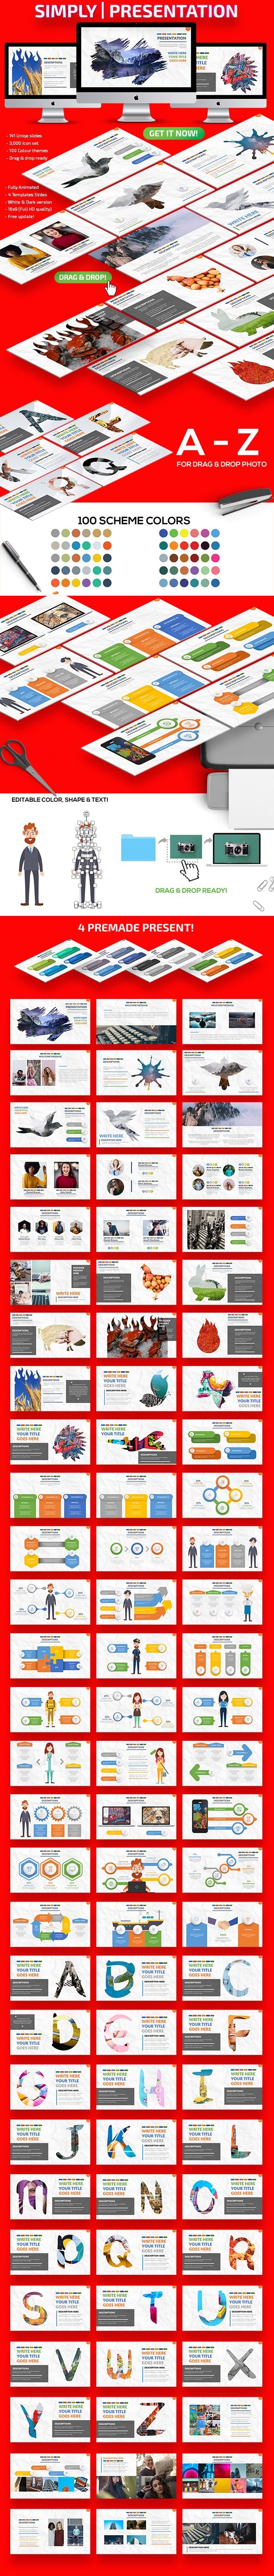 Simply Powerpoint Presentation - PowerPoint Templates Presentation Templates